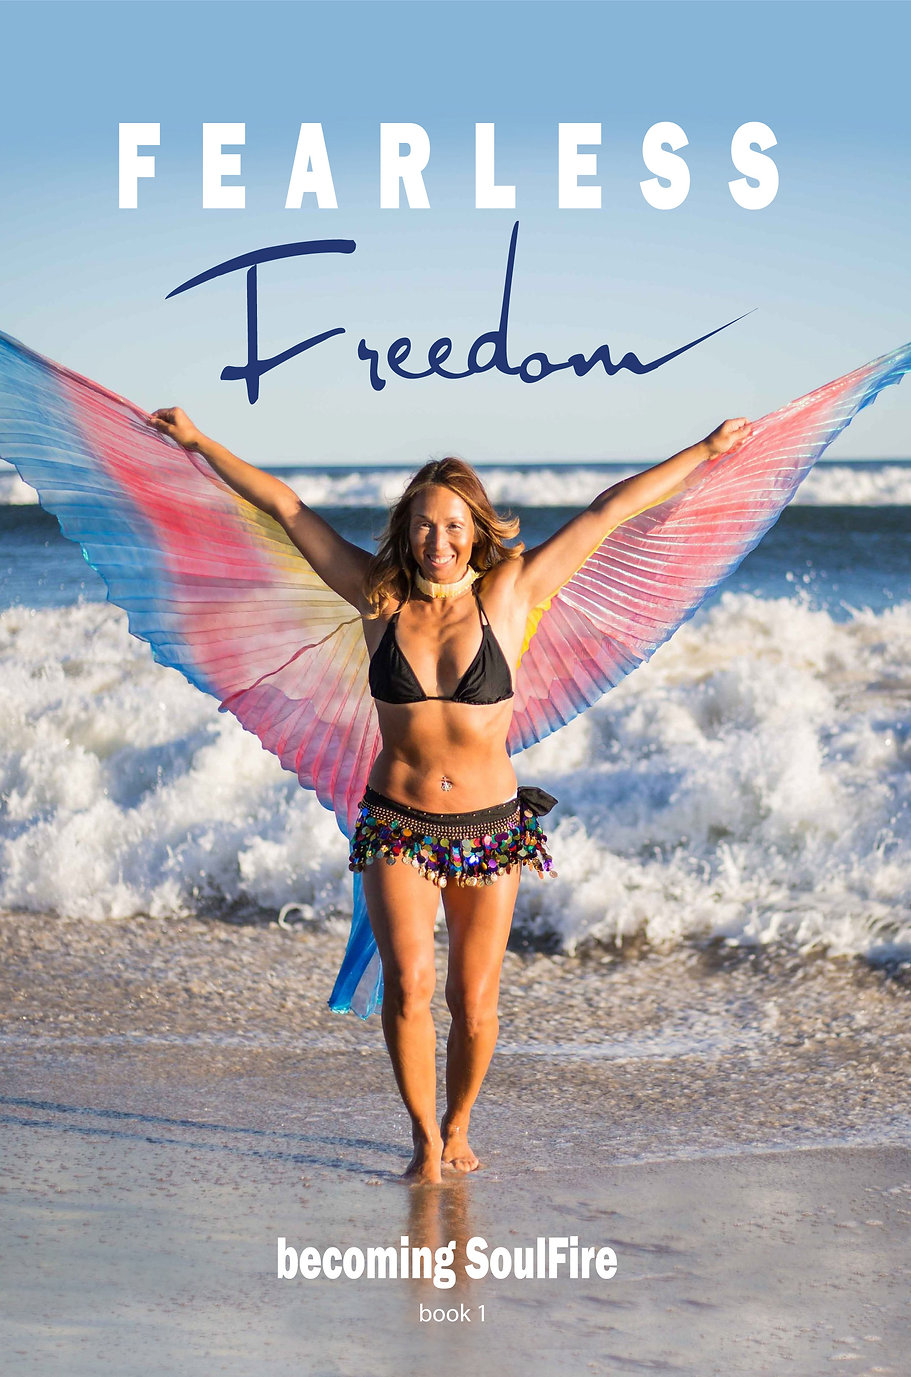 SoulFire Fearless Freedom